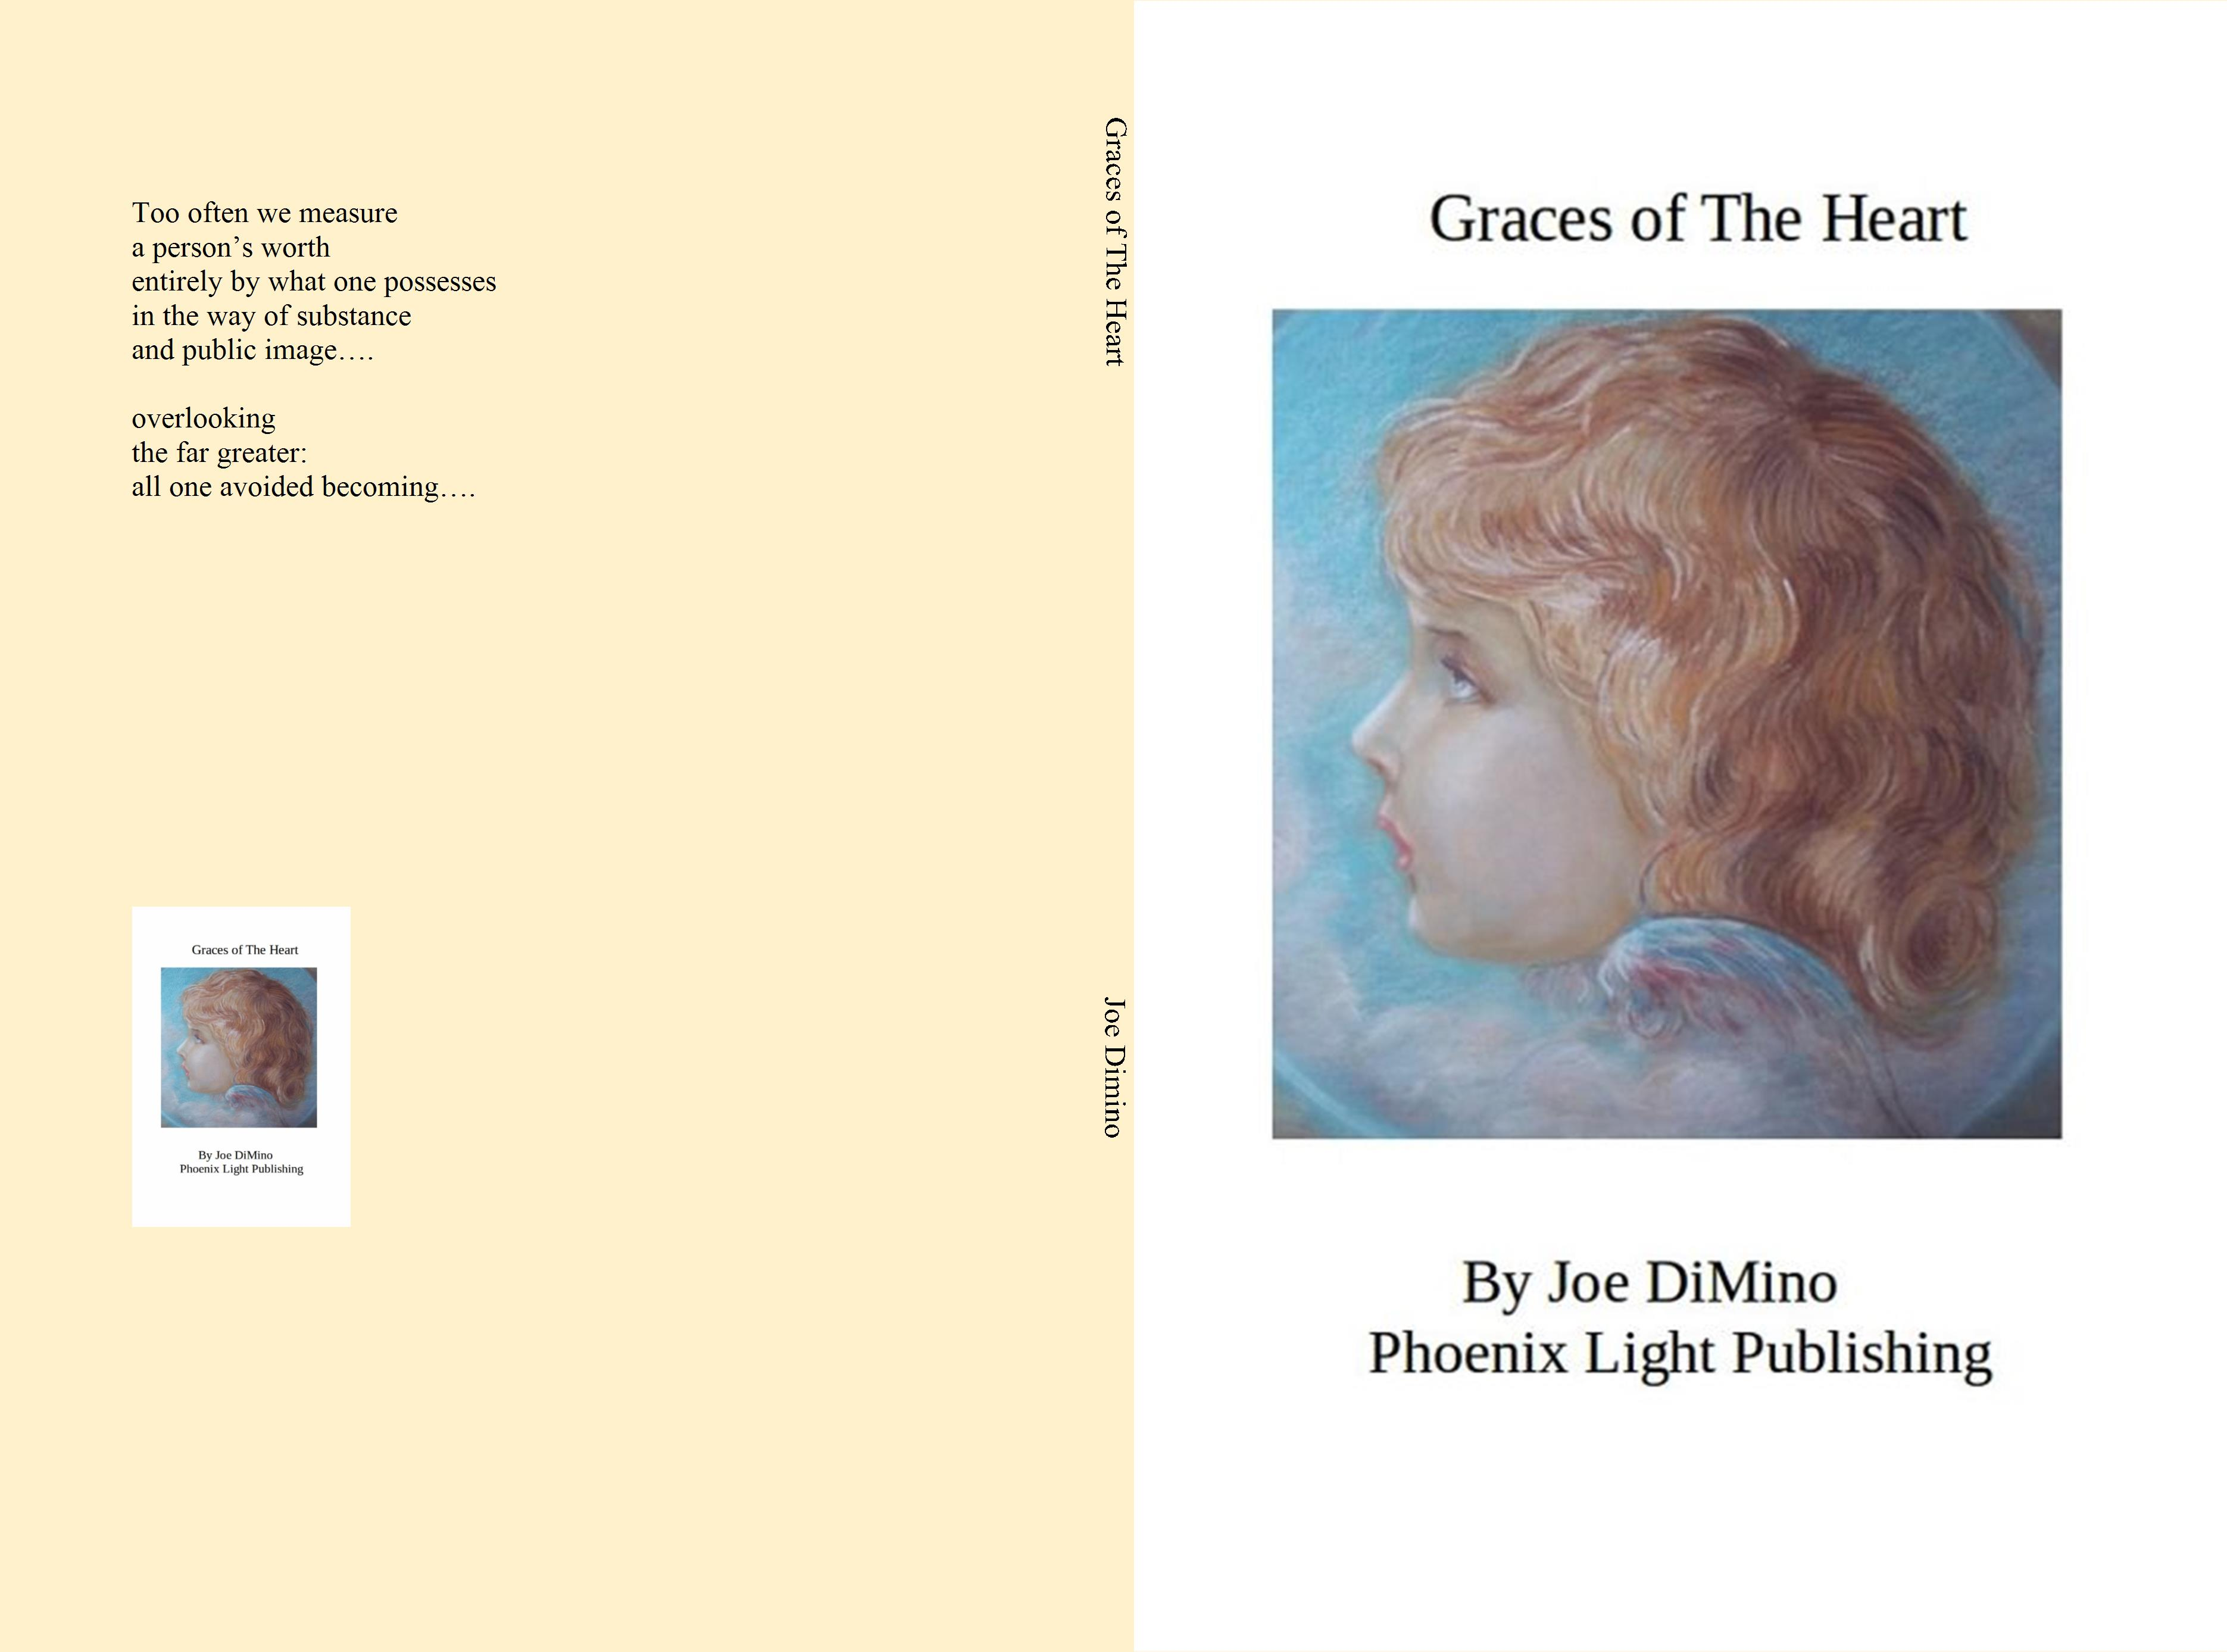 Graces of The Heart cover image